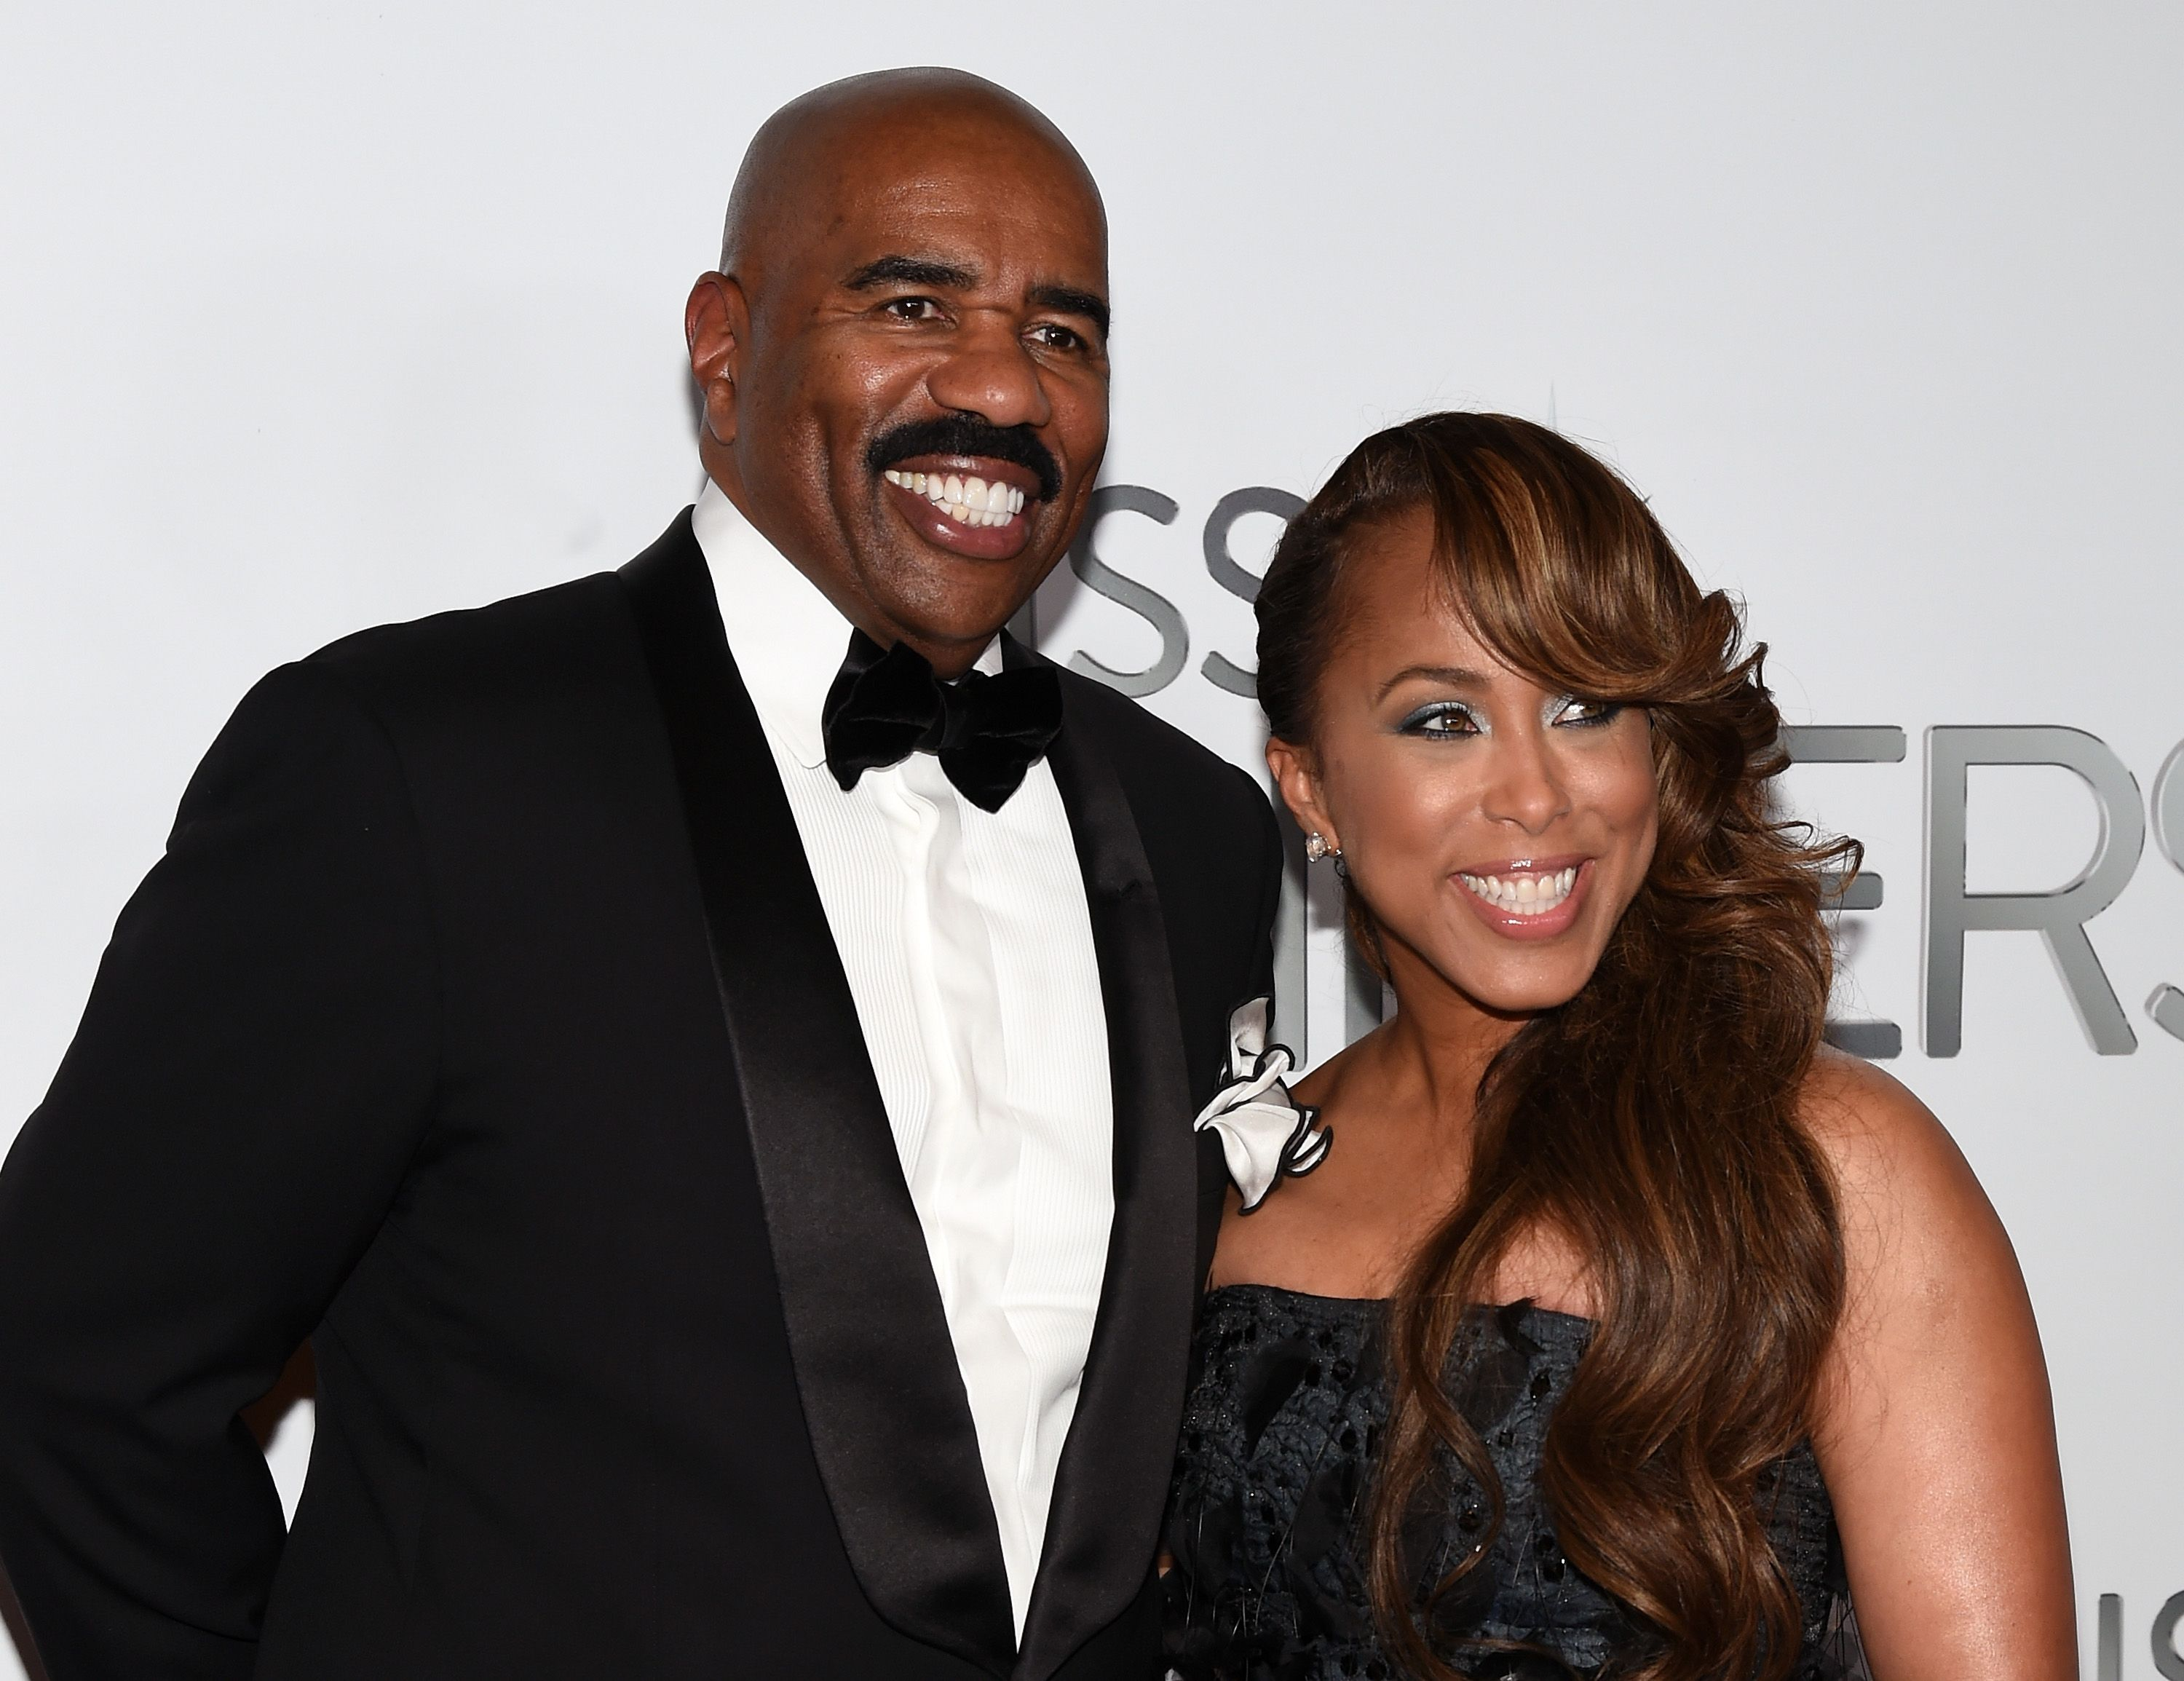 Steve Harvey and Marjorie Harvey during the 2015 Miss Universe Pageant at Planet Hollywood Resort & Casino on December 20, 2015 in Las Vegas, Nevada.   Source: Getty Images